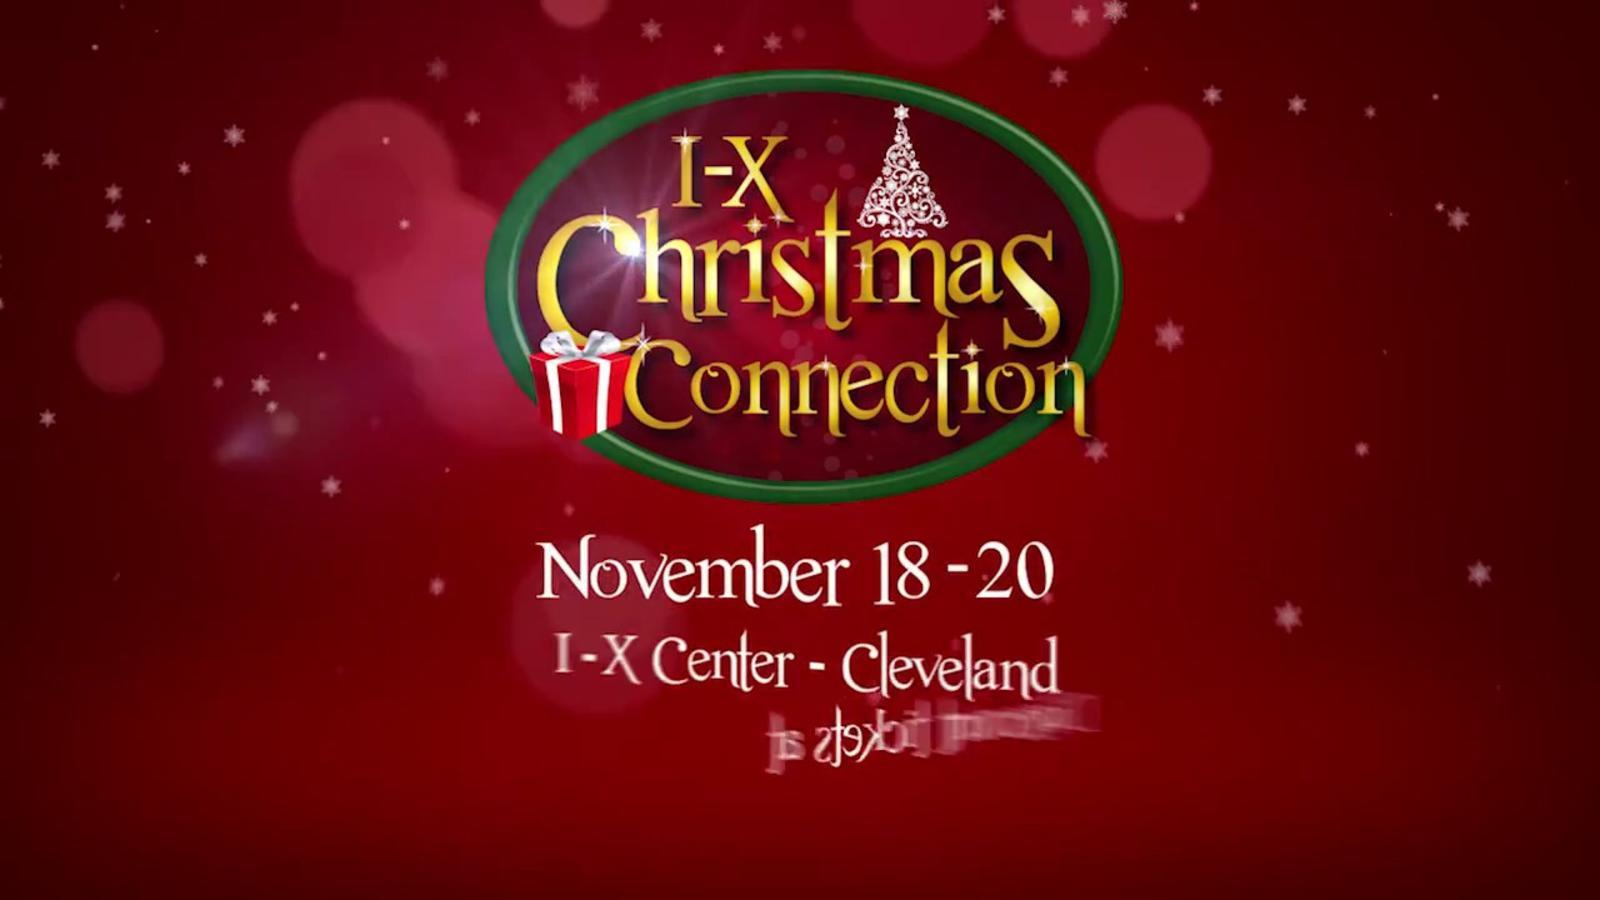 IX Christmas Connection 2016